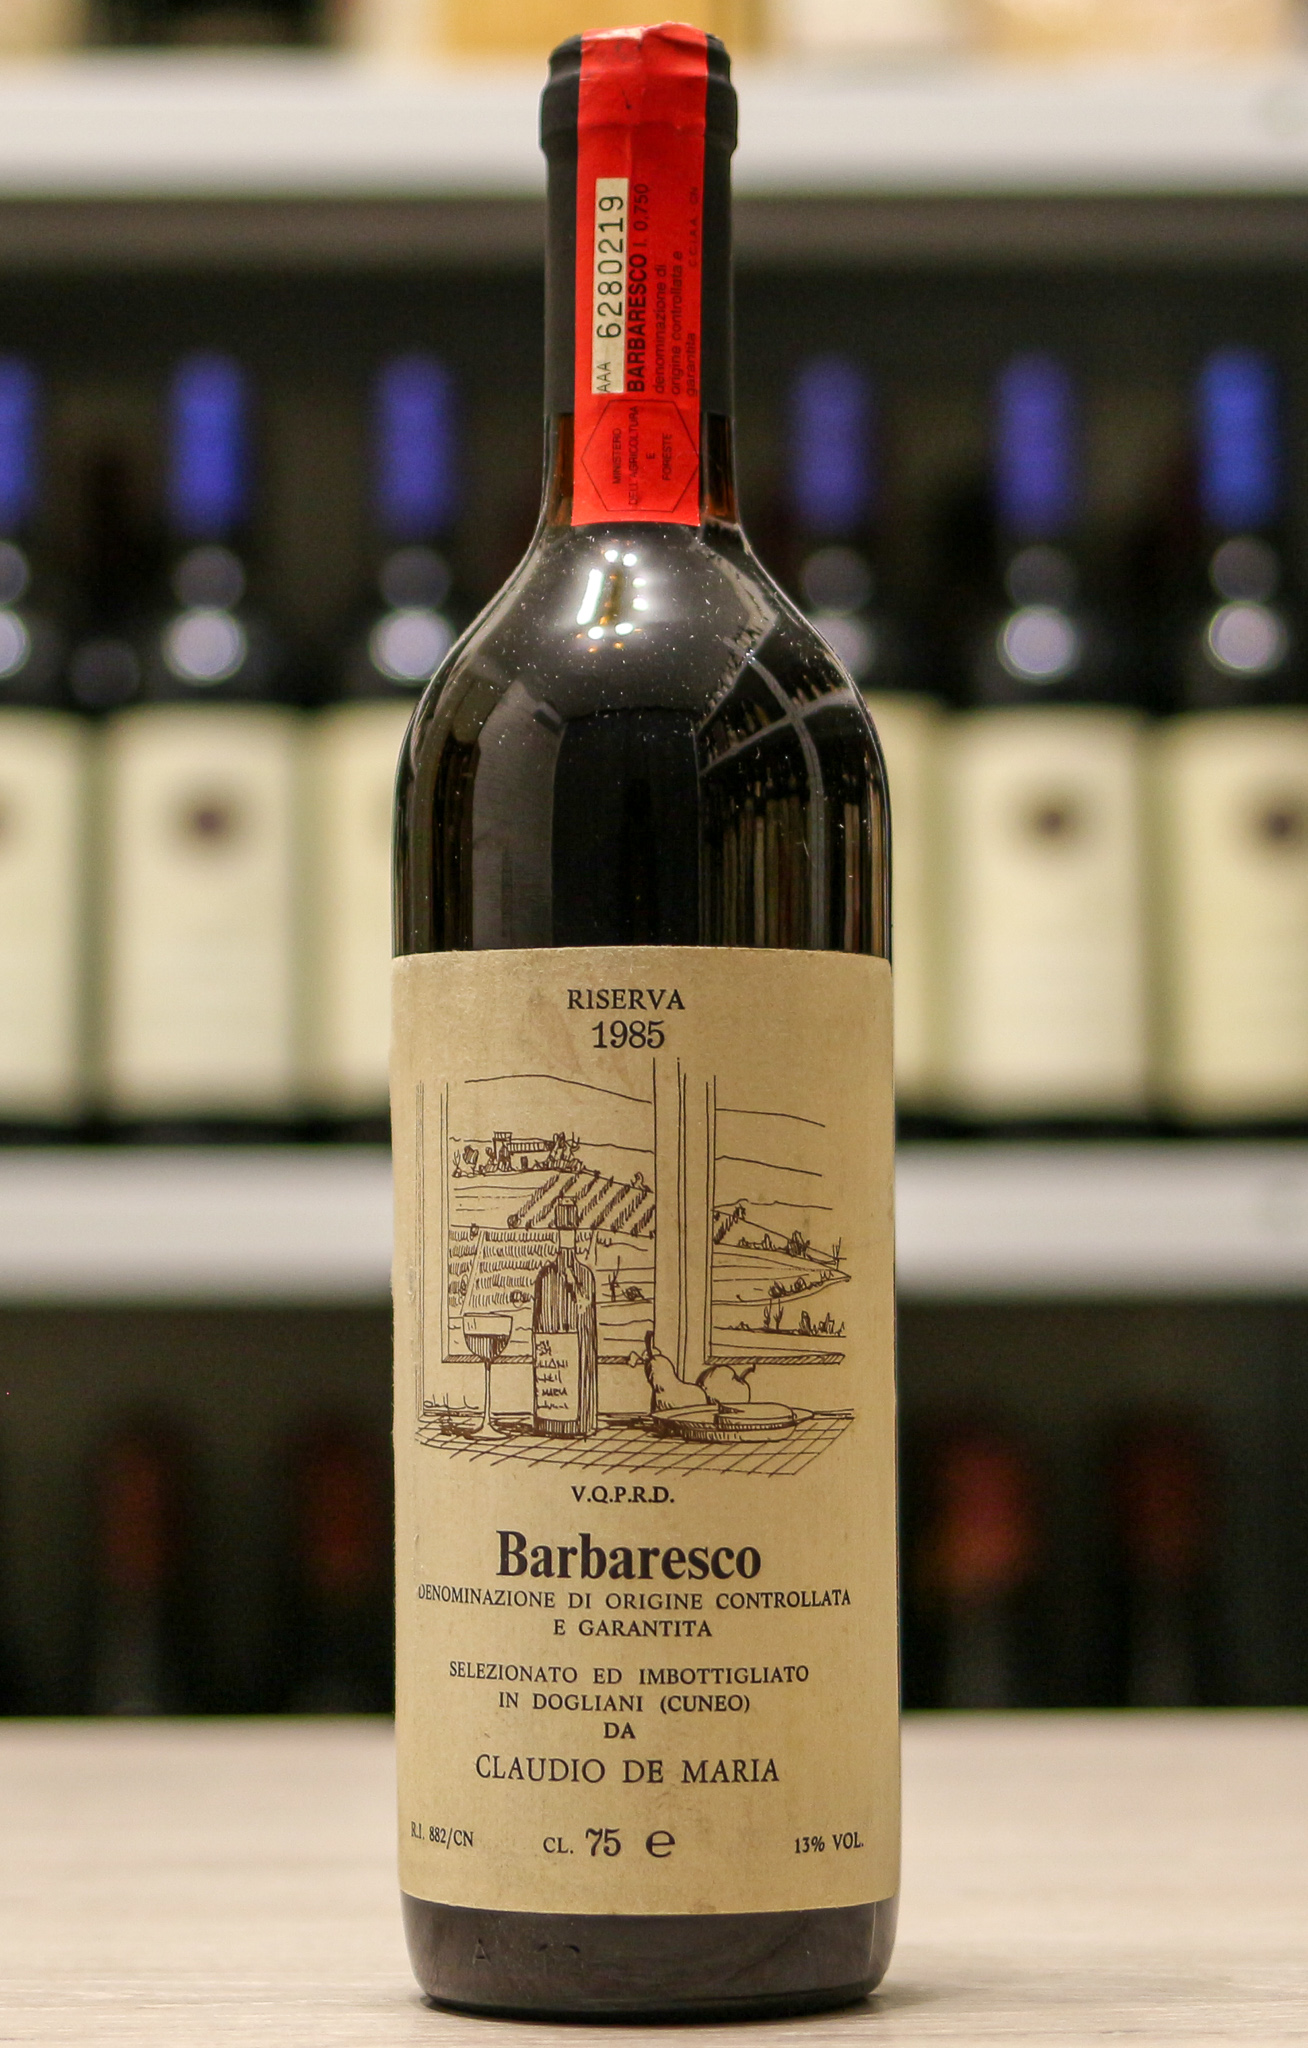 Вино Barbaresco Claudio de Maria 1985 года урожая